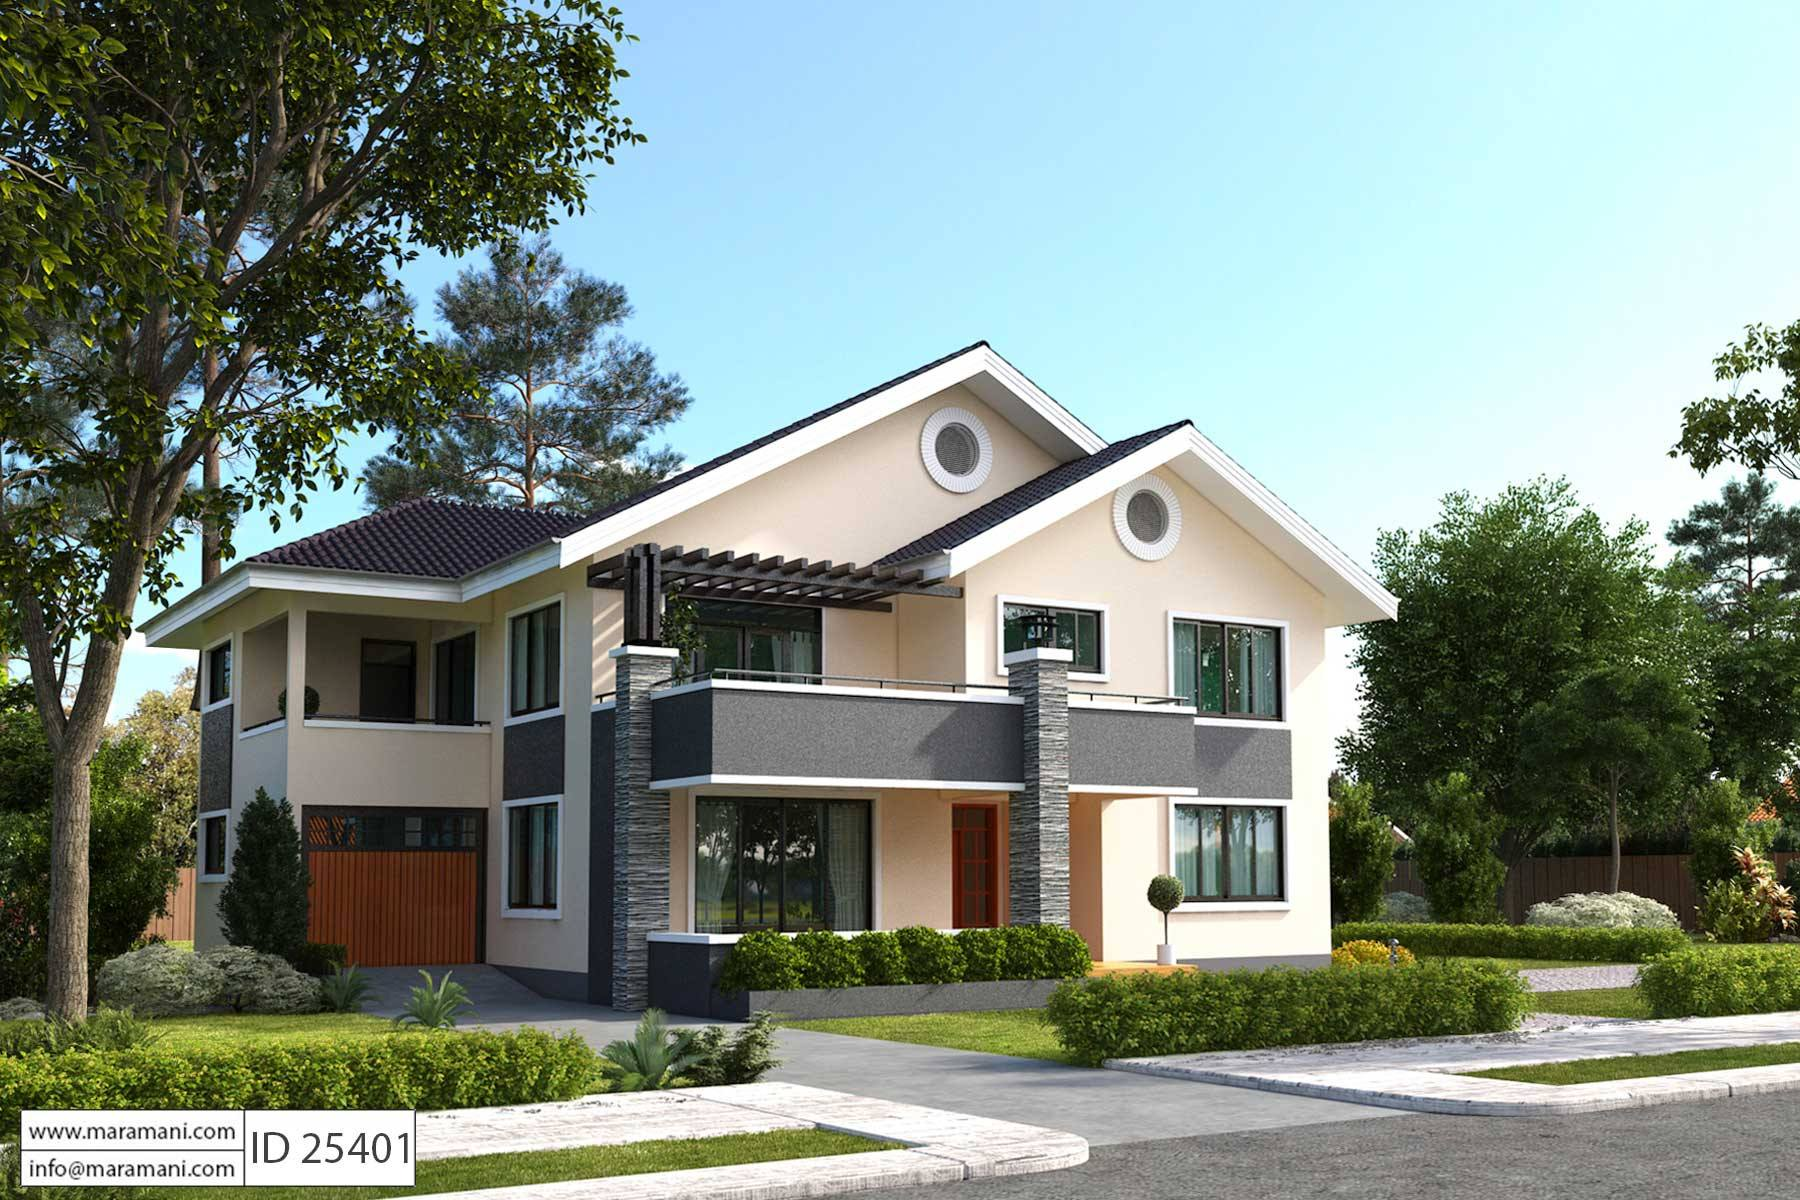 5 bedroom house plan id 25401 floor plans by maramani for 8 bedroom homes